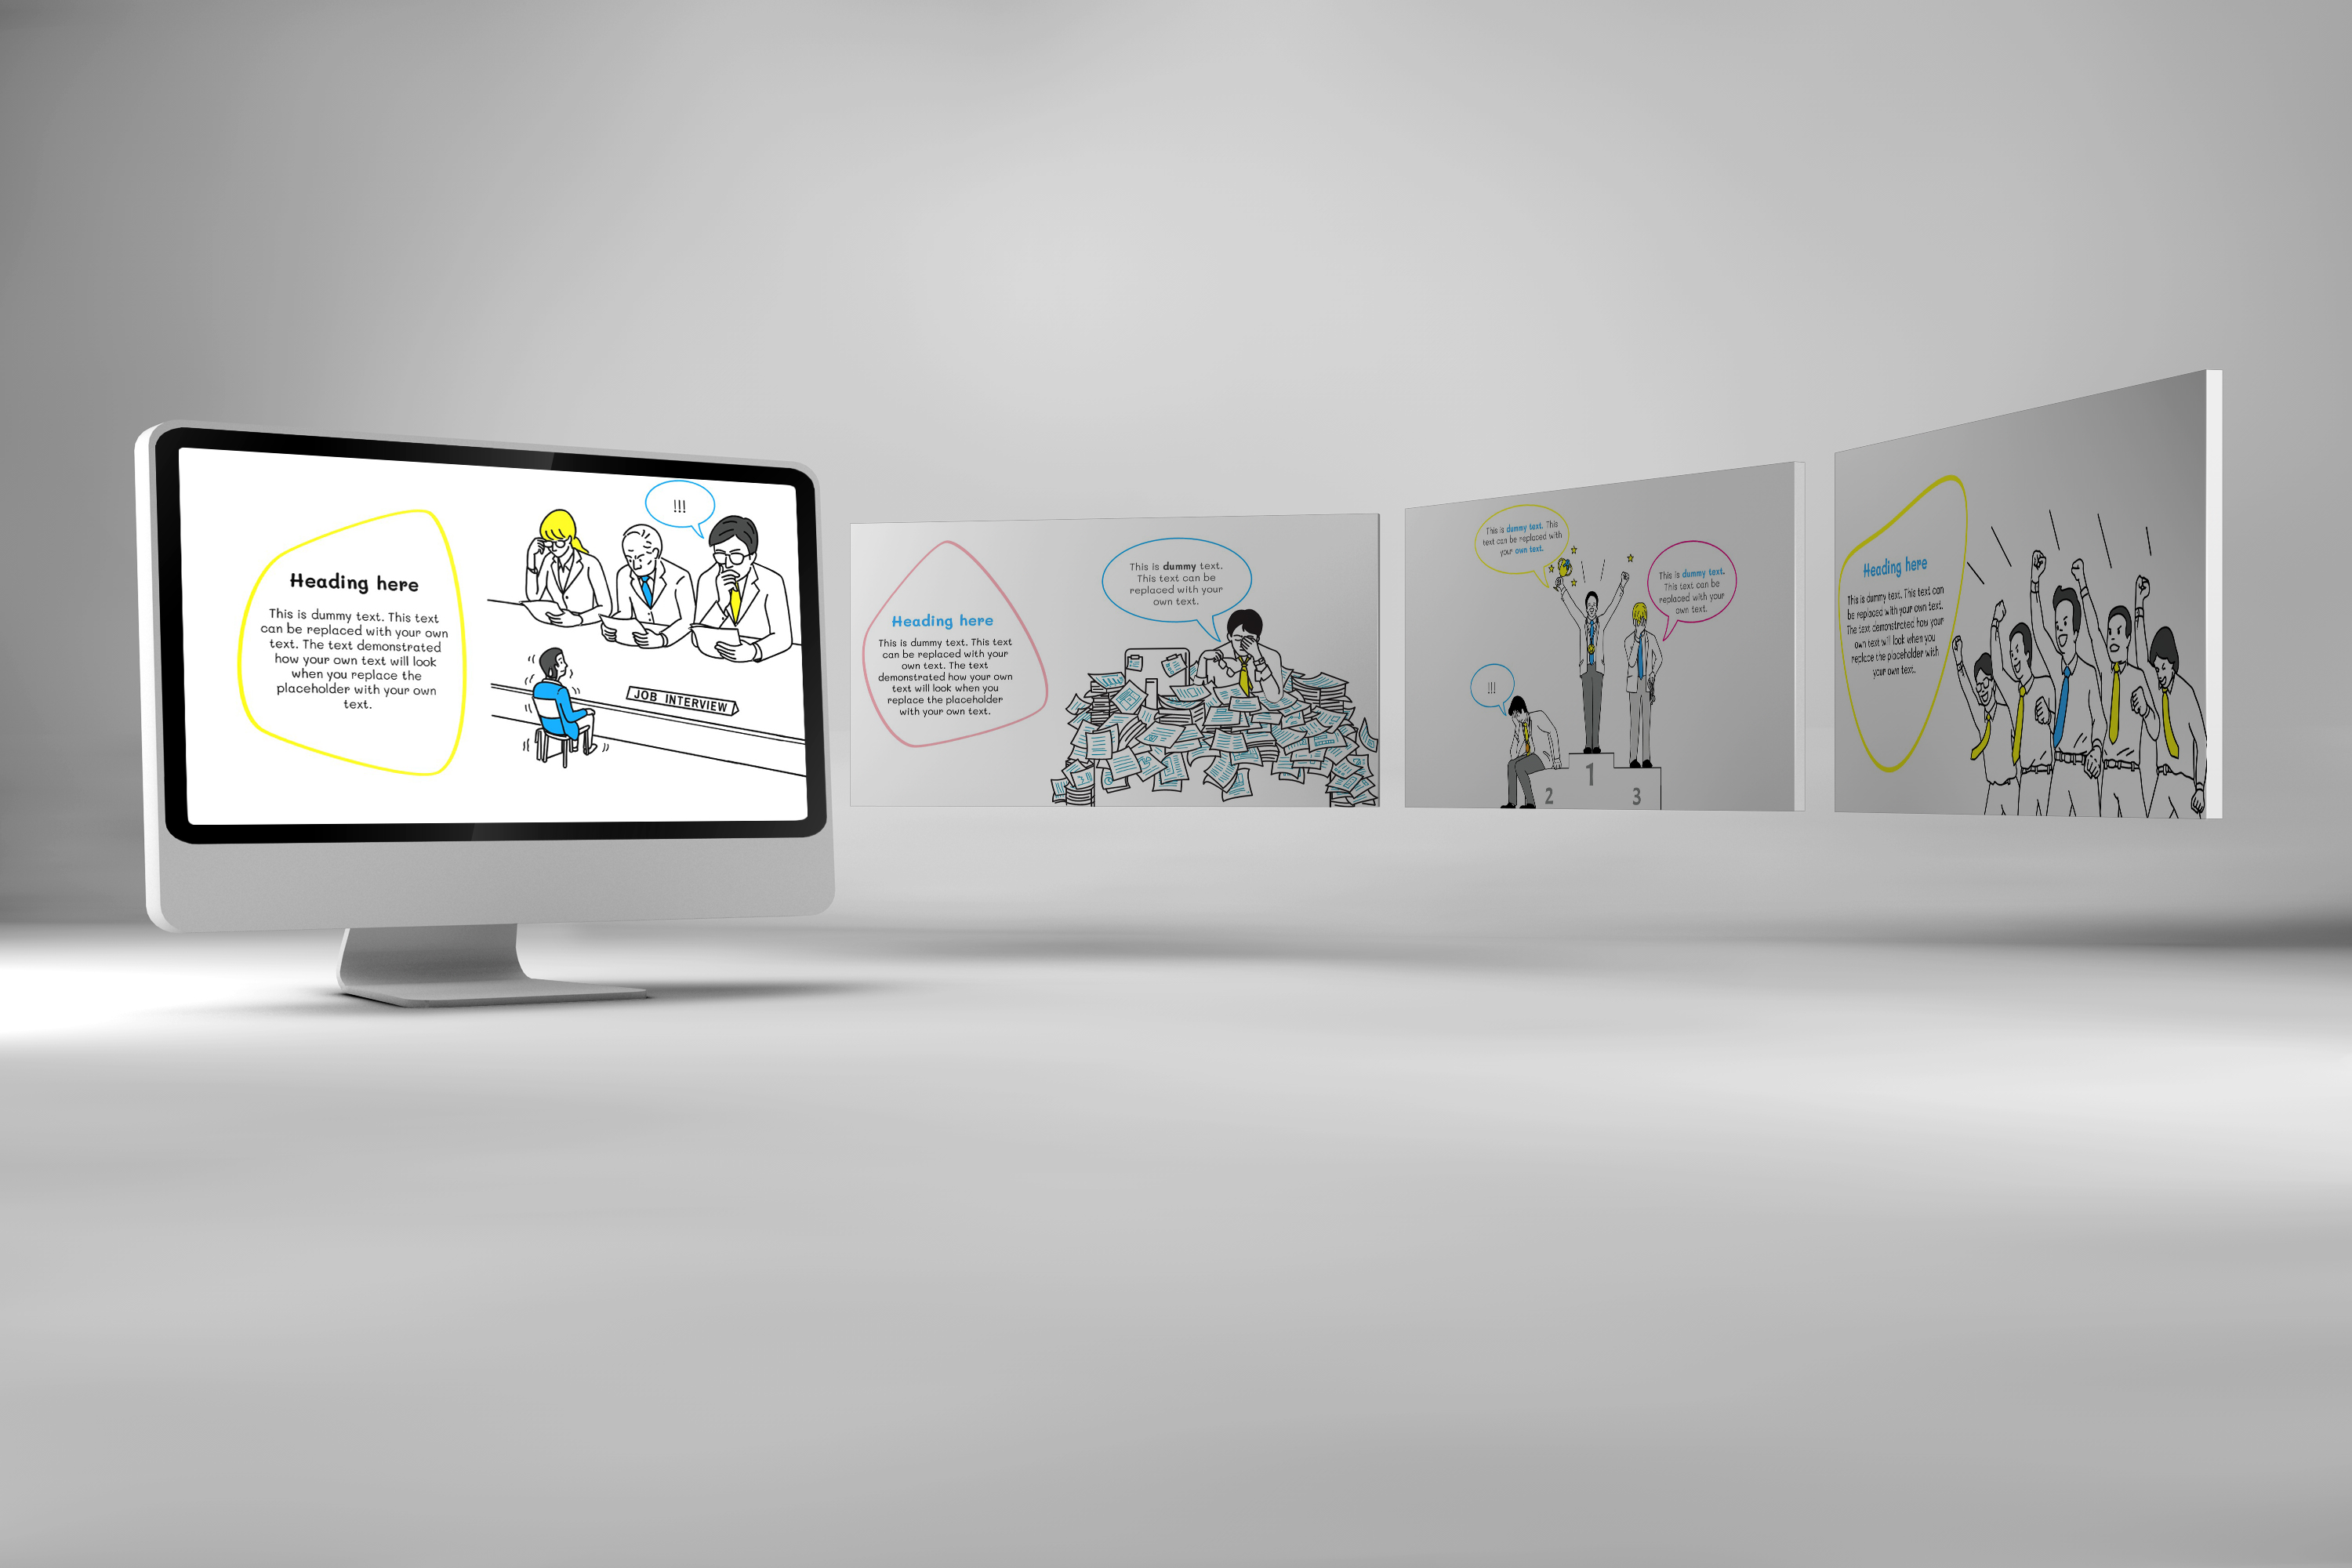 Office Doodle PowerPoint Template example image 3